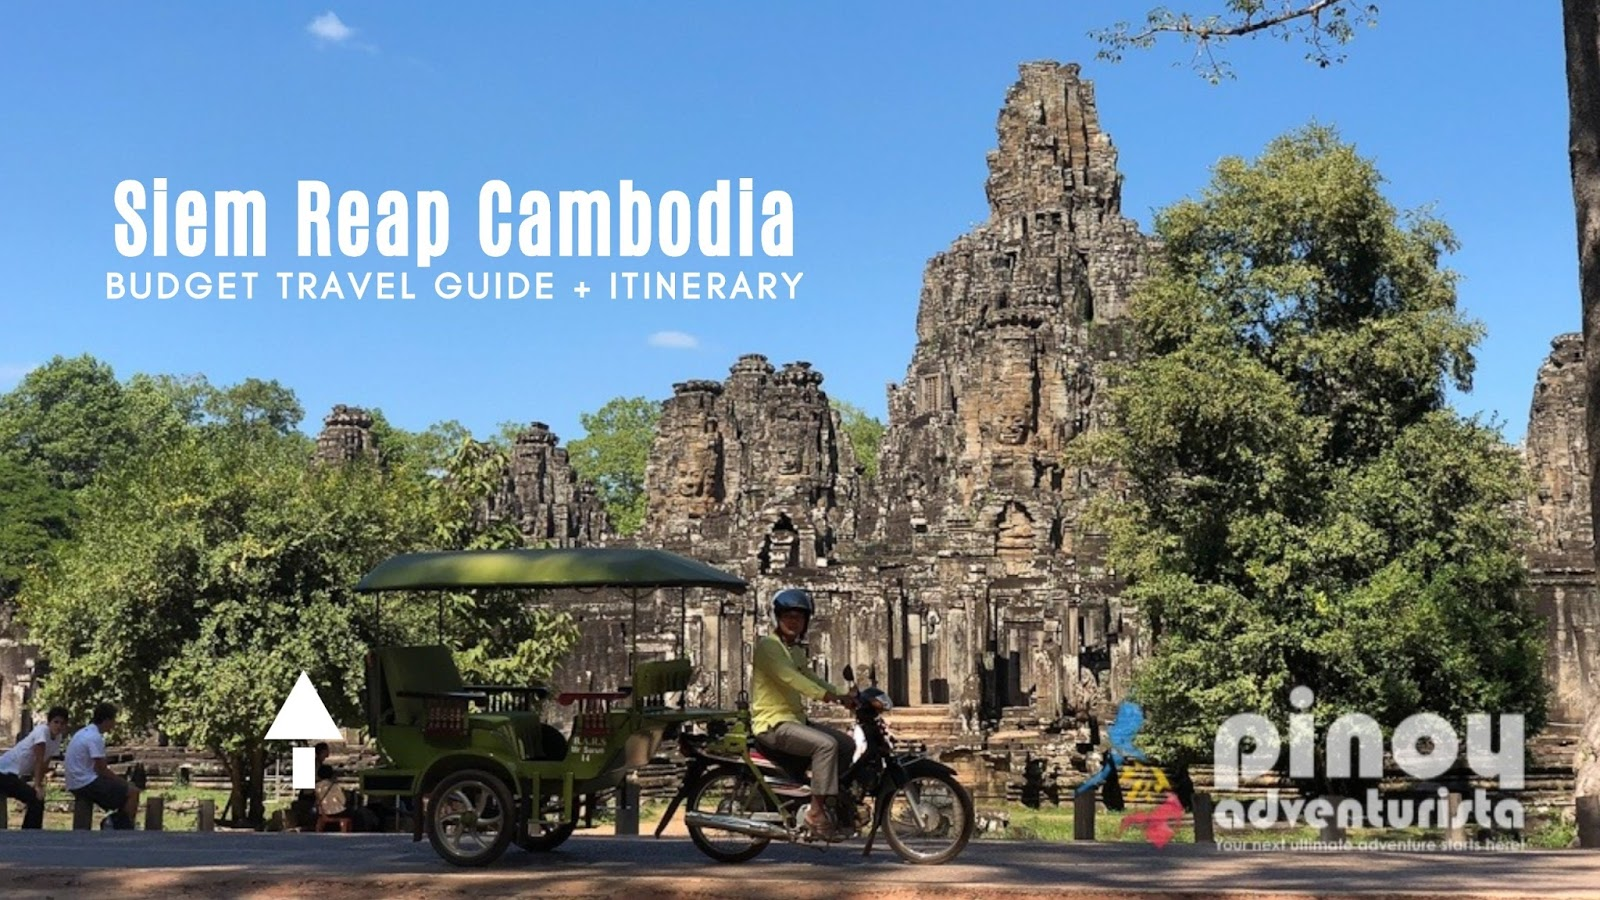 the vacation to siem reap Find great rates on siem reap vacations, siem reap packages, and other siem reap vacation deals on orbitz save more when you book flights and hotels together.